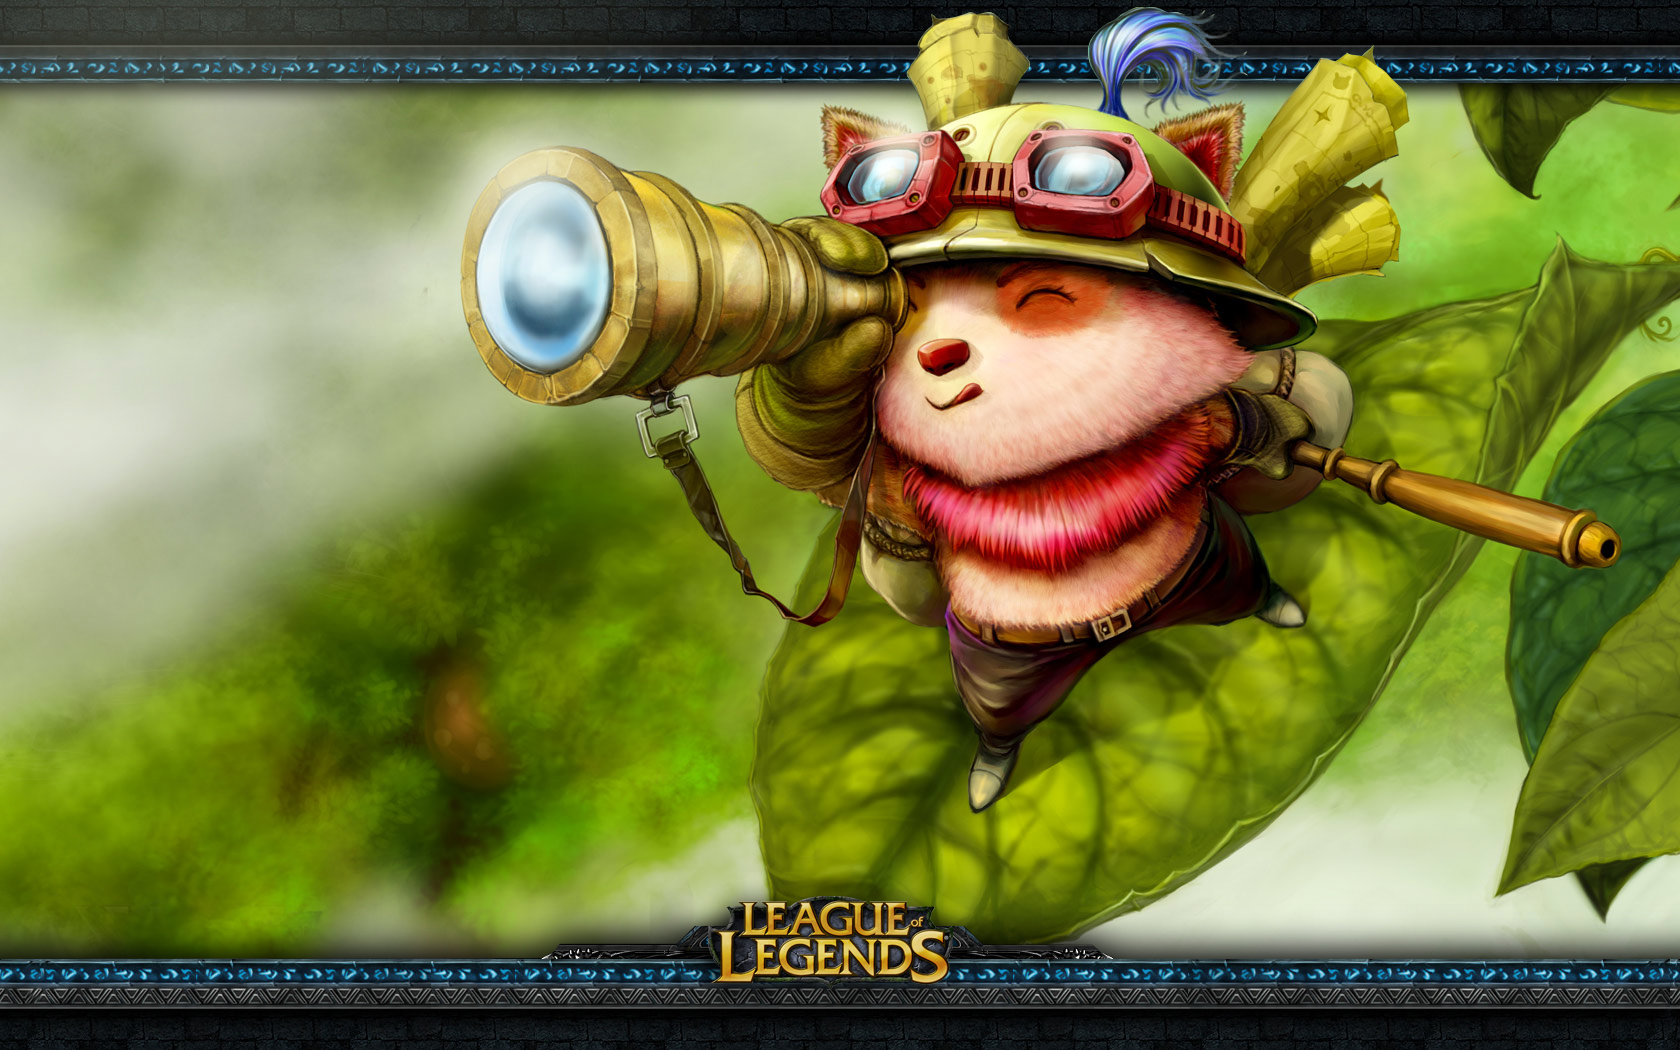 Games / League of Legends: Teemo #16975